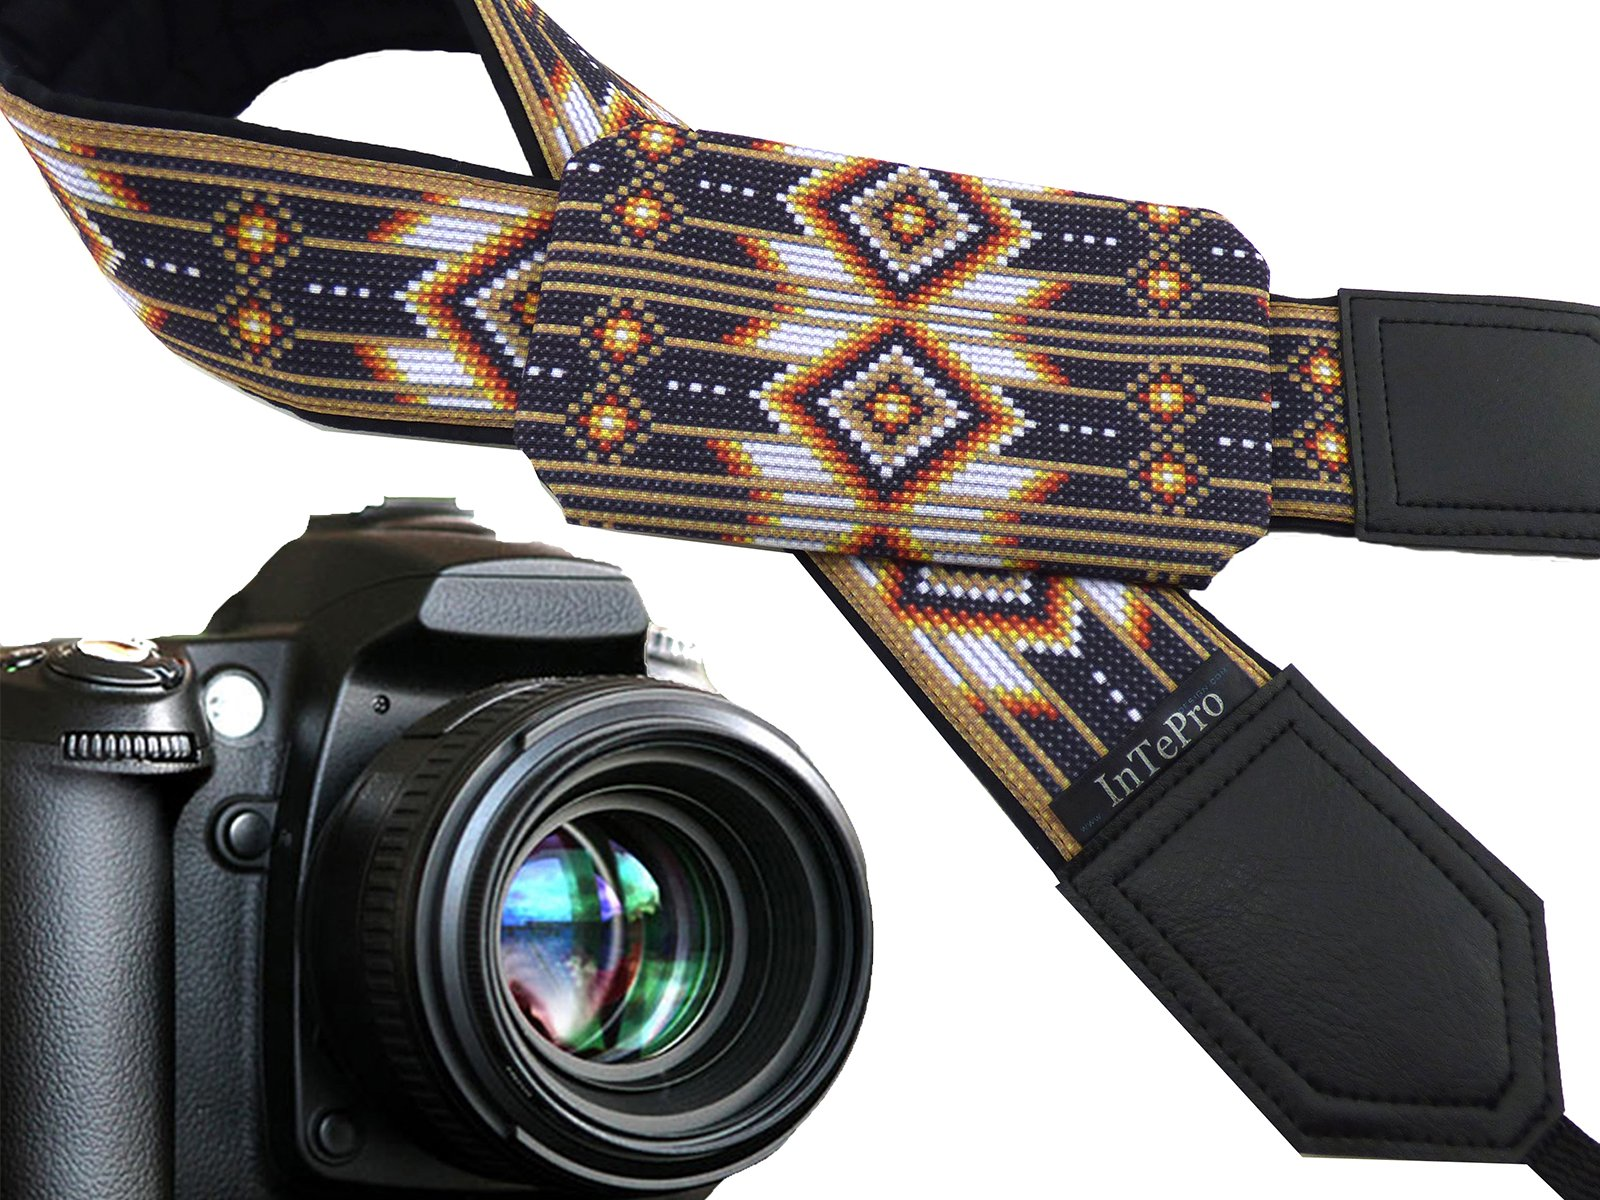 Camera Accessories. Native American Inspired Camera Strap with Pocket. Brown Camera Strap for DSLR and SLR Cameras. Unisex. Great Gift! 00373